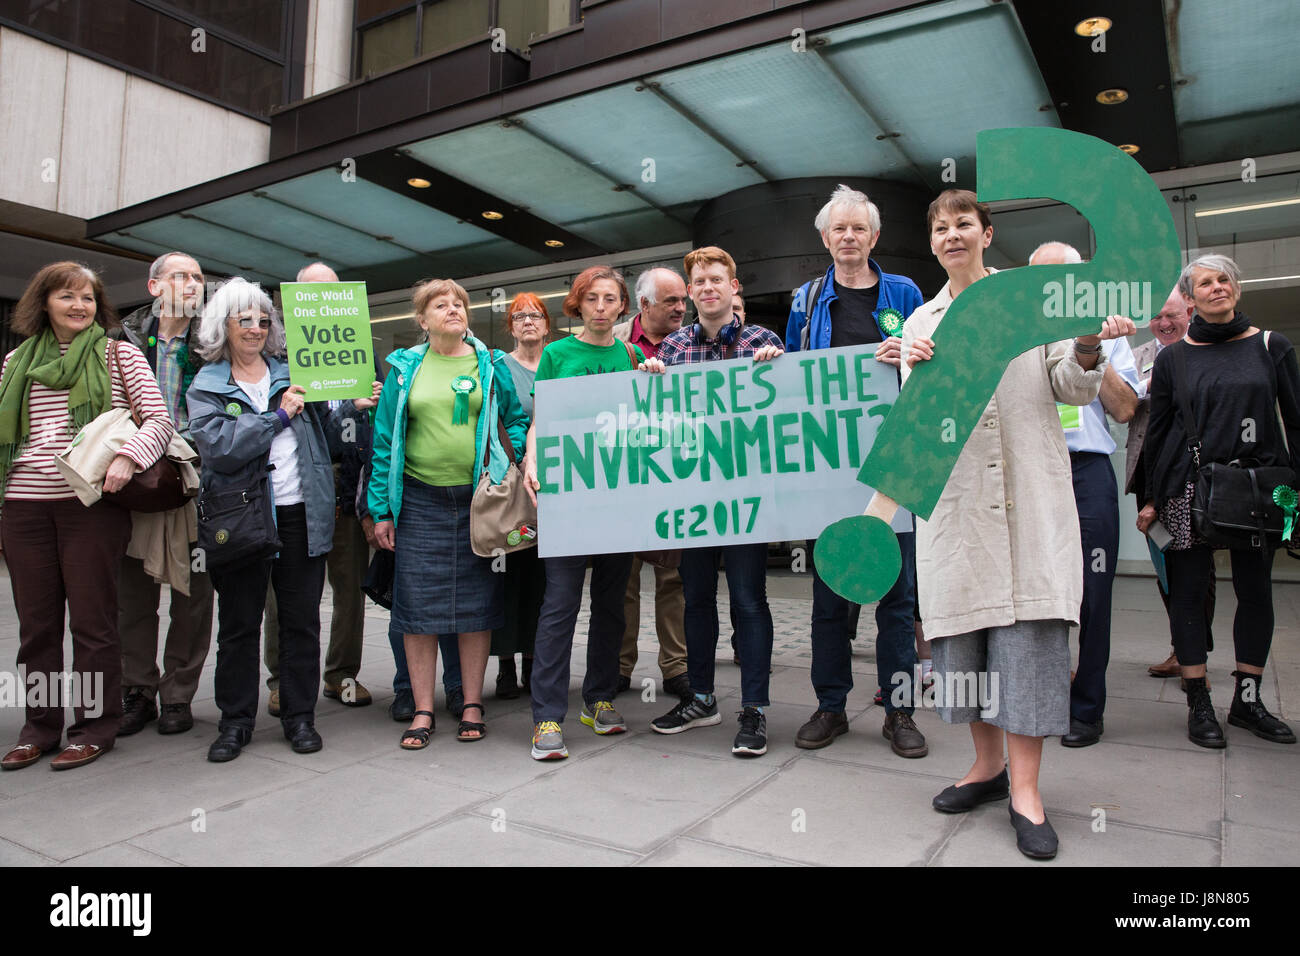 London, UK. 30th May, 2017. Caroline Lucas, co-leader of the Green Party, visits the Labour Party headquarters with - Stock Image